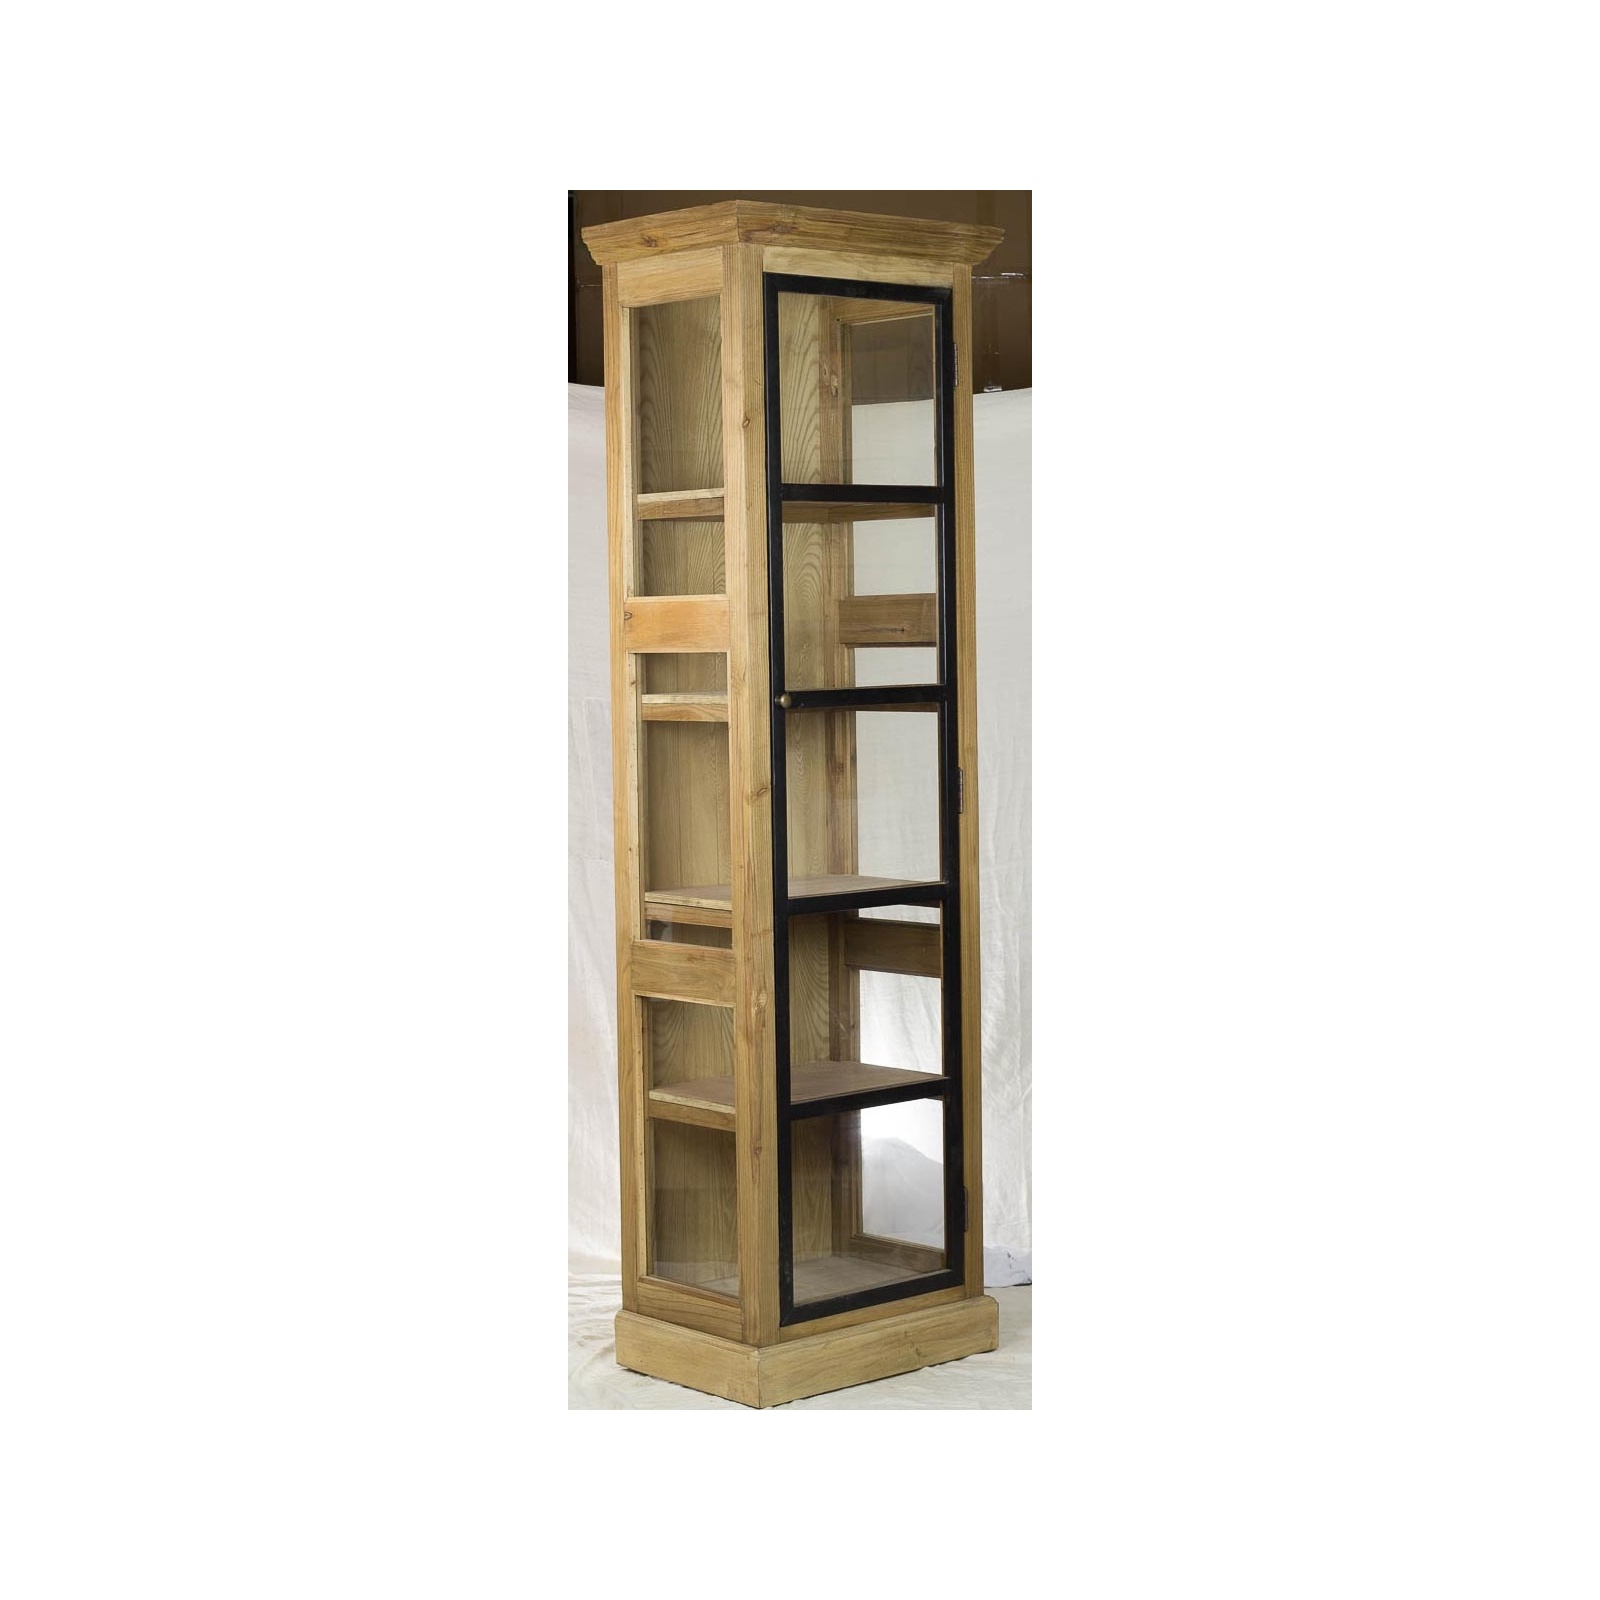 armoire une porte industrielle jp2b d coration. Black Bedroom Furniture Sets. Home Design Ideas